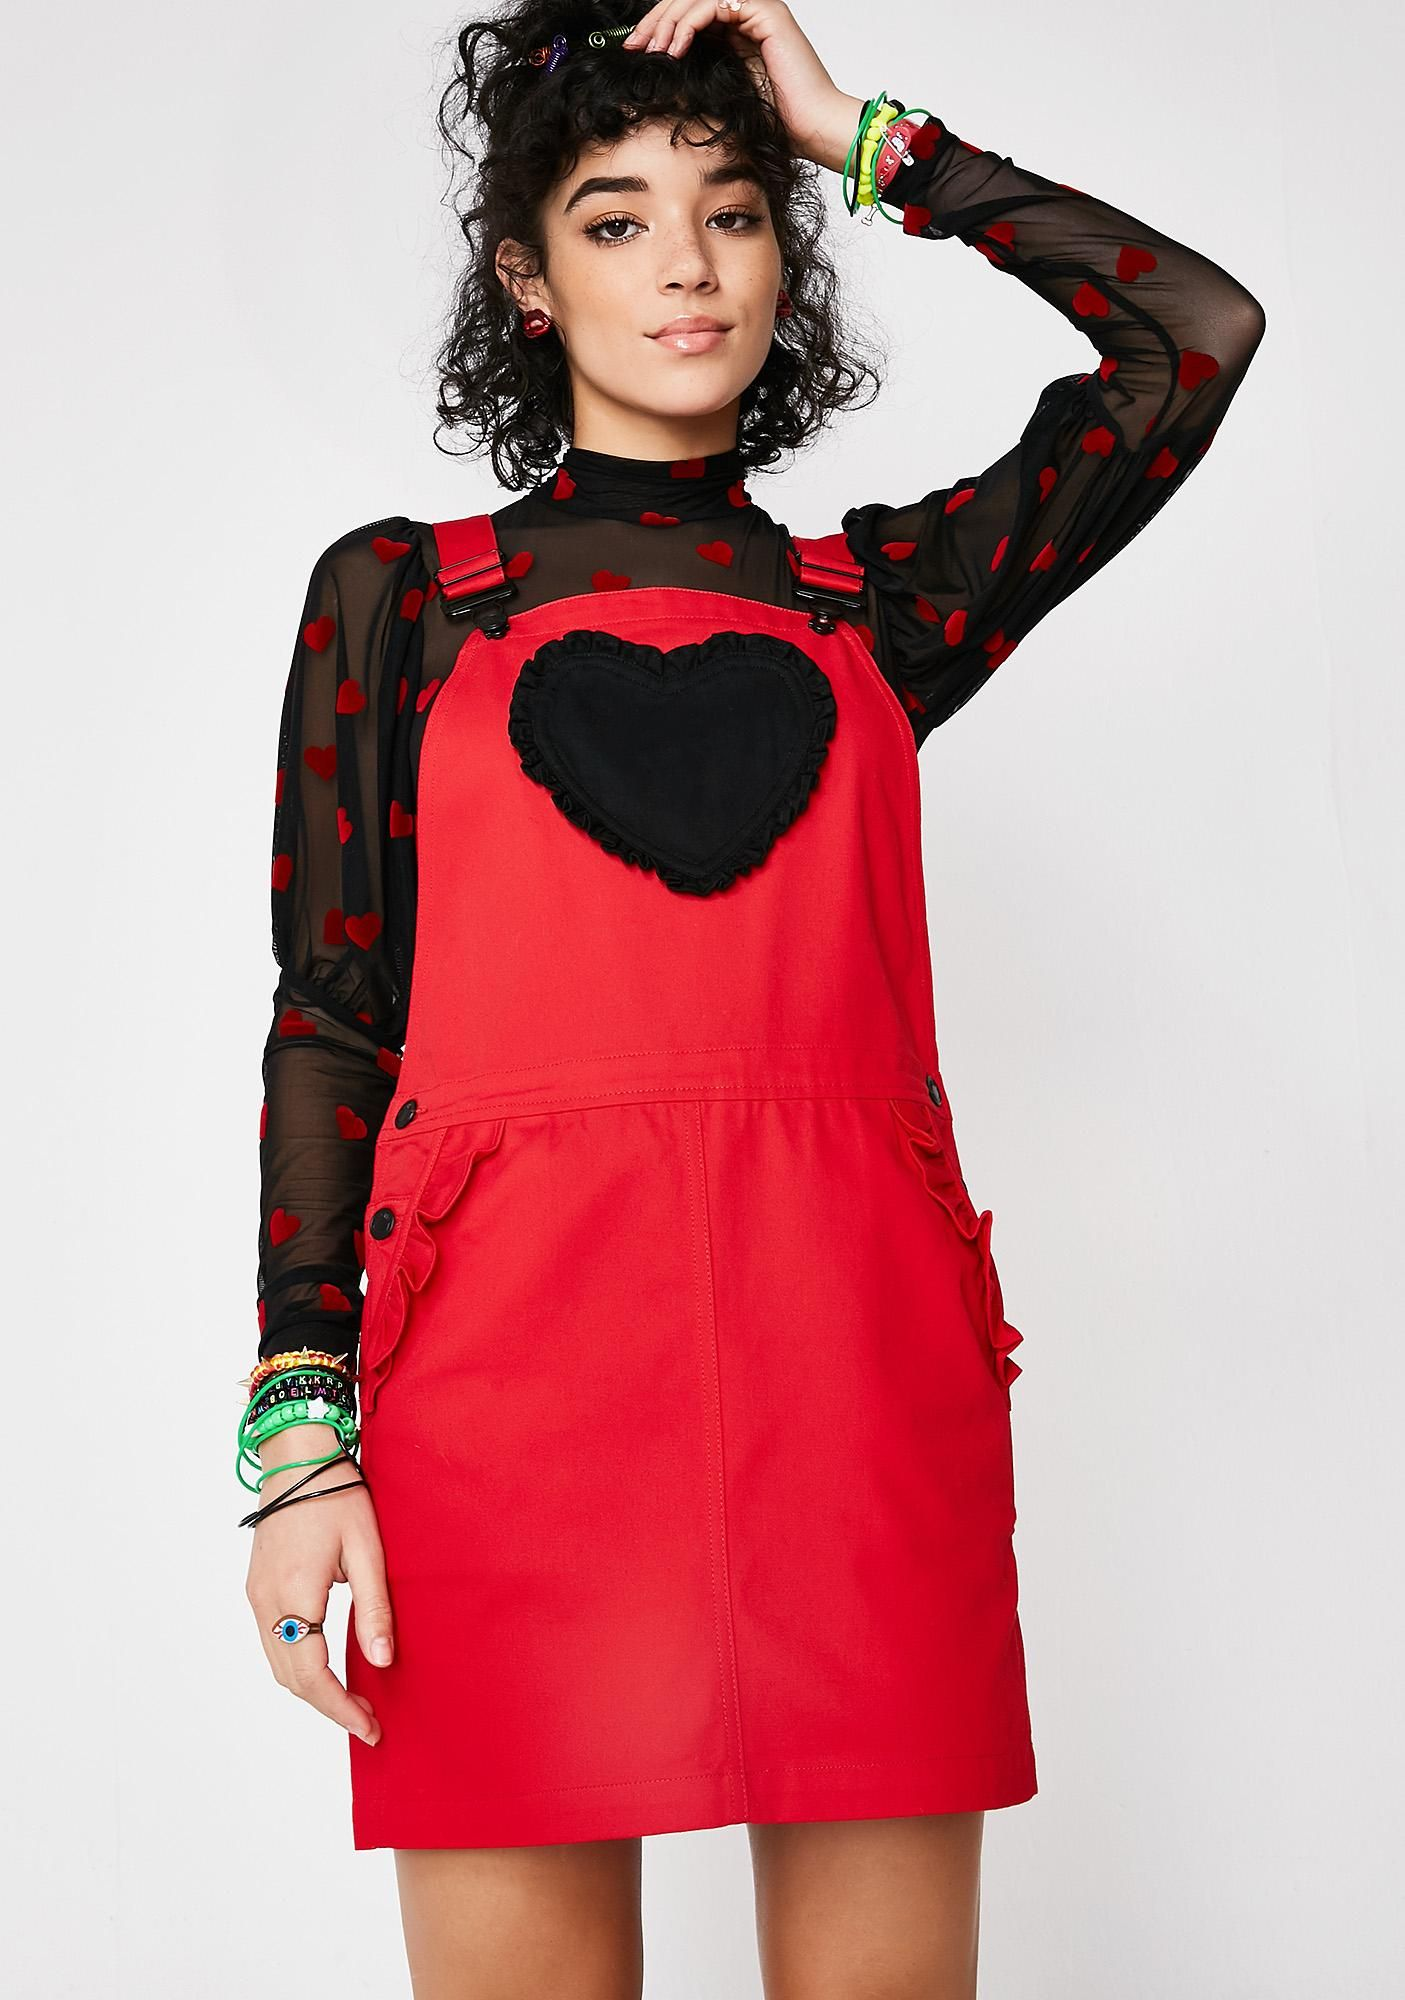 9b130bd97fd Lazy Oaf Frilly Heart Pocket Pinny Dress cuz you re all in your feelz. Keep  it cute af with this denim overall dress that has a black heart patch pocket  on ...